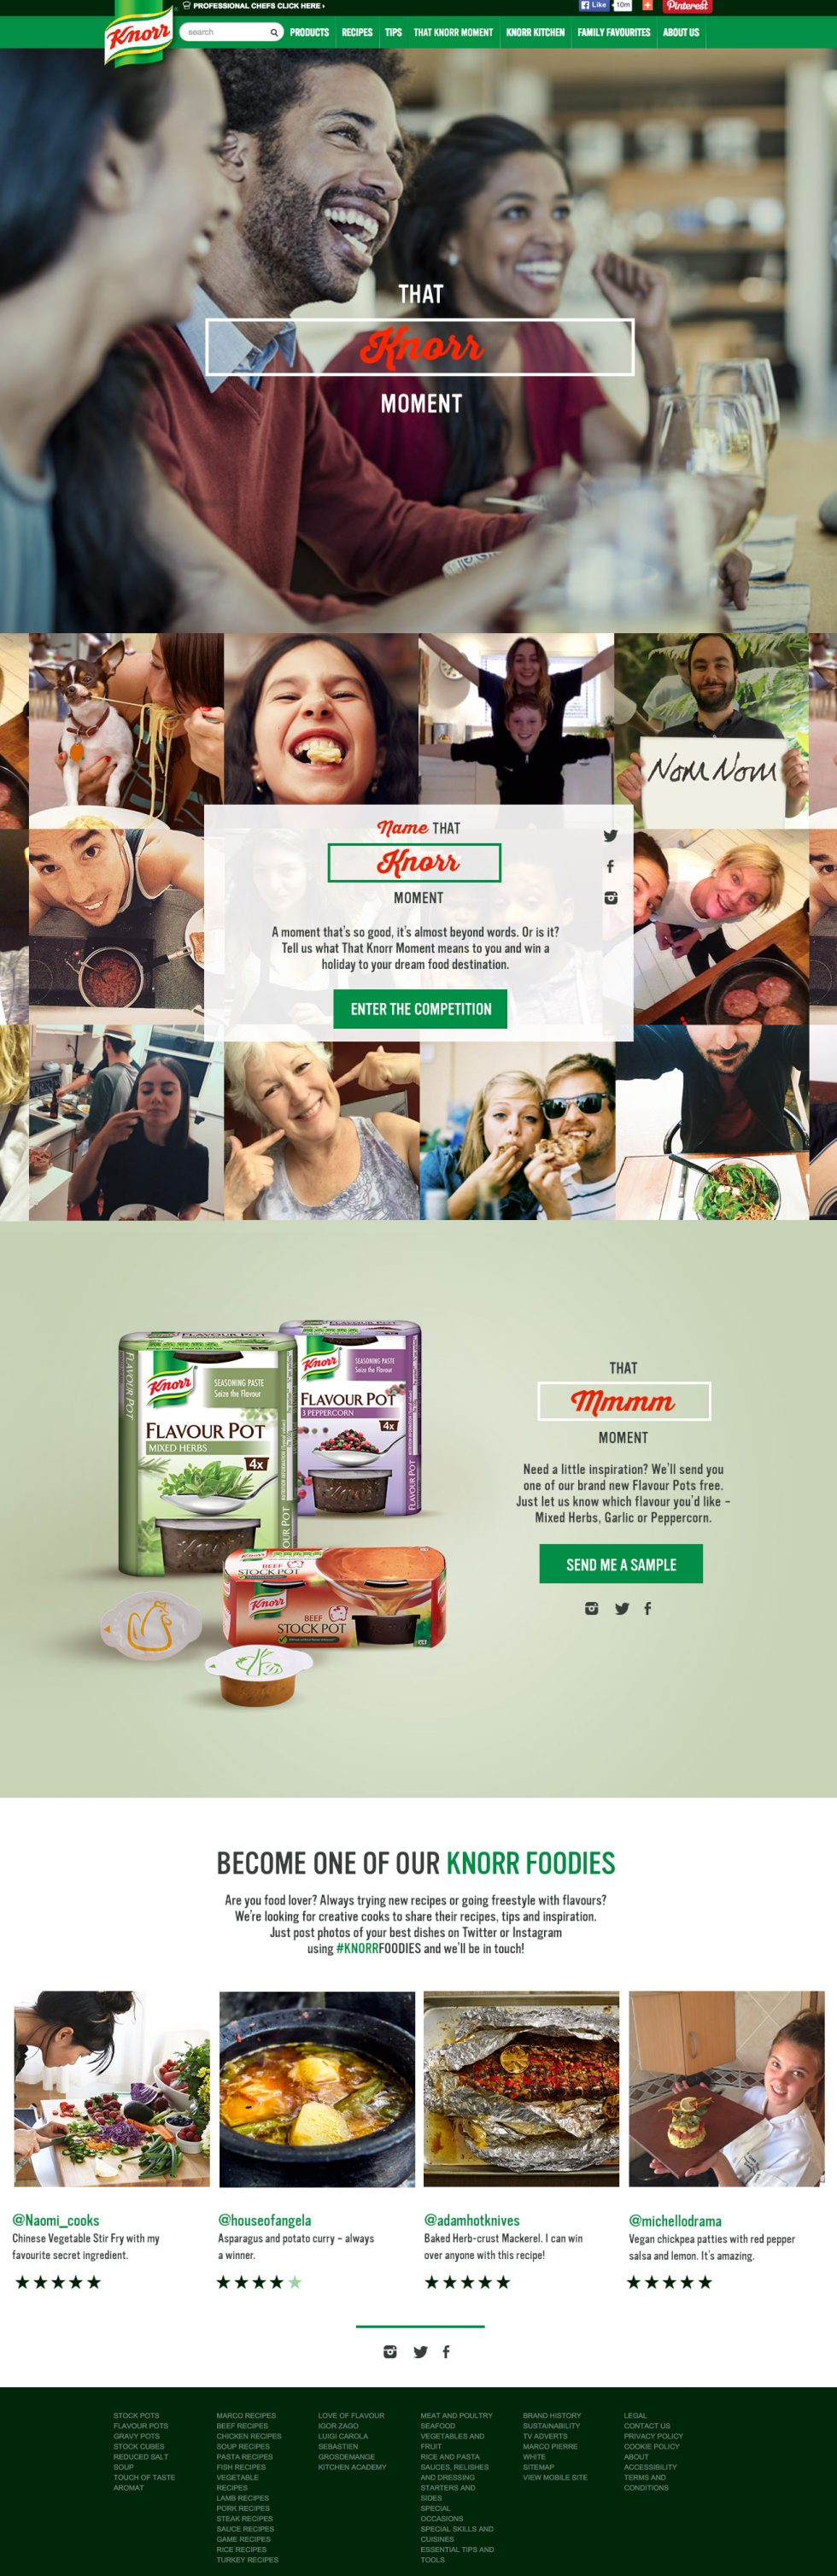 krispy krush, Knorr, That Knorr Moment, Beginning of the year